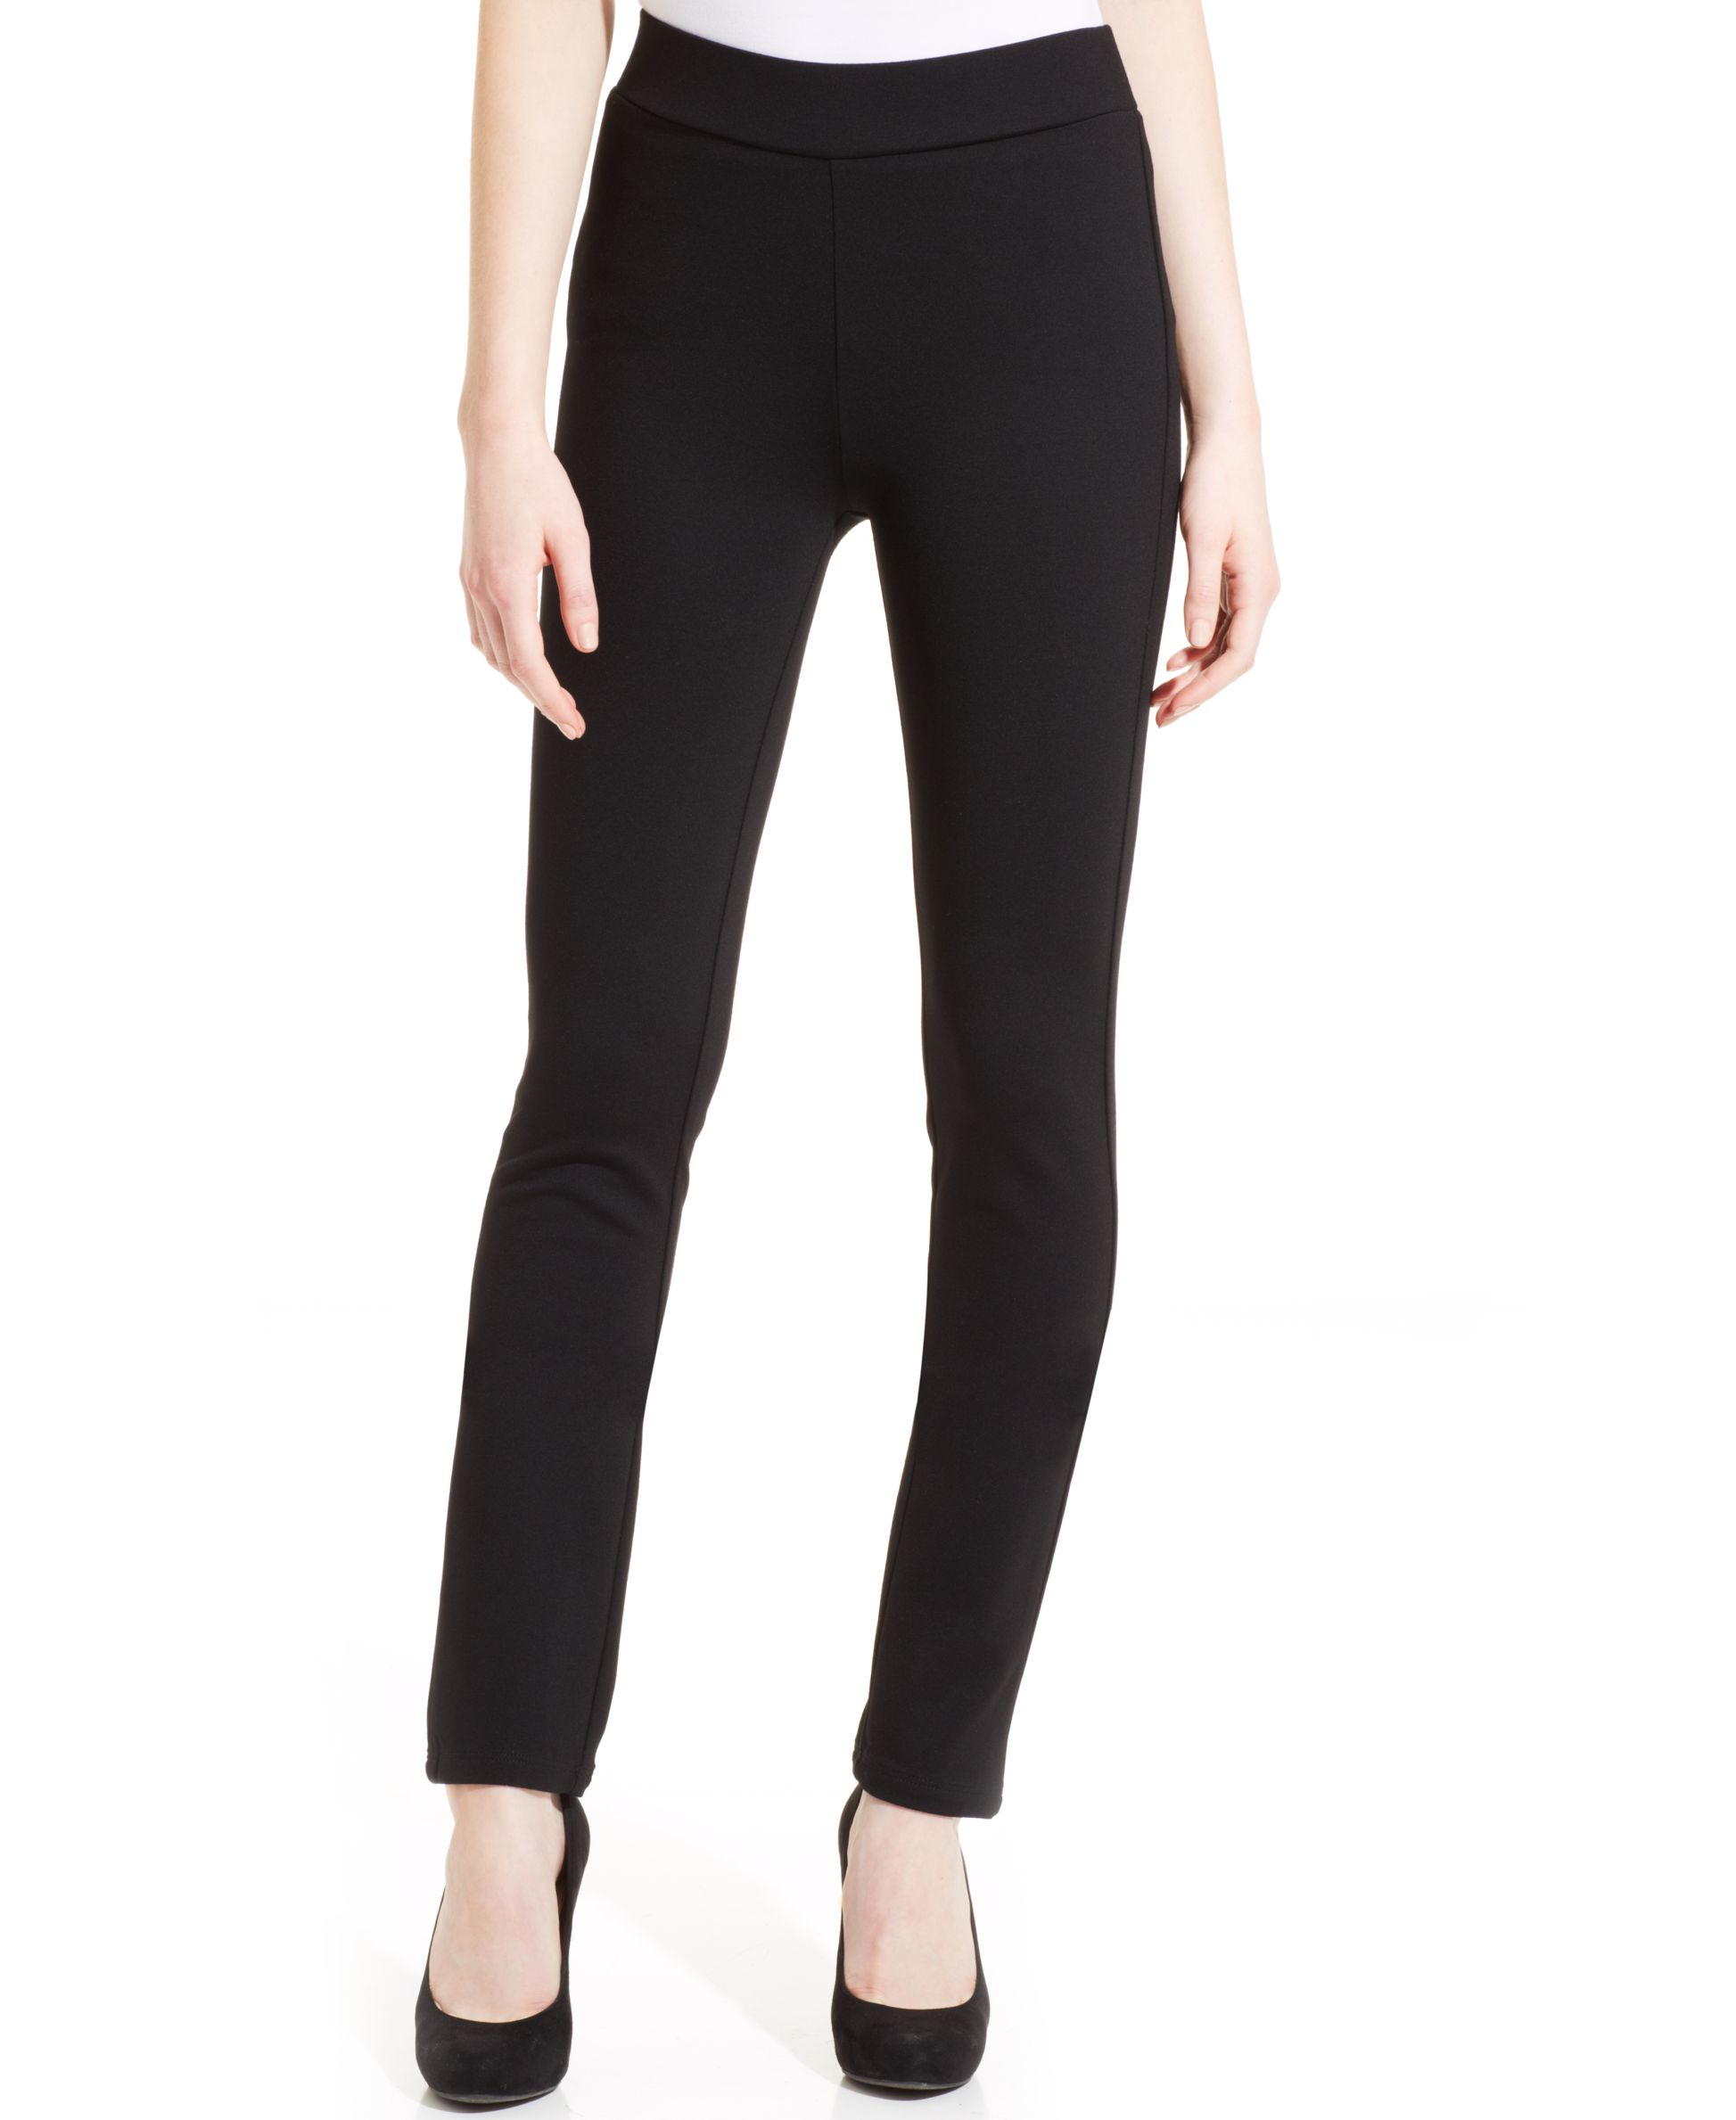 womens black ponte knit pants photo - 2